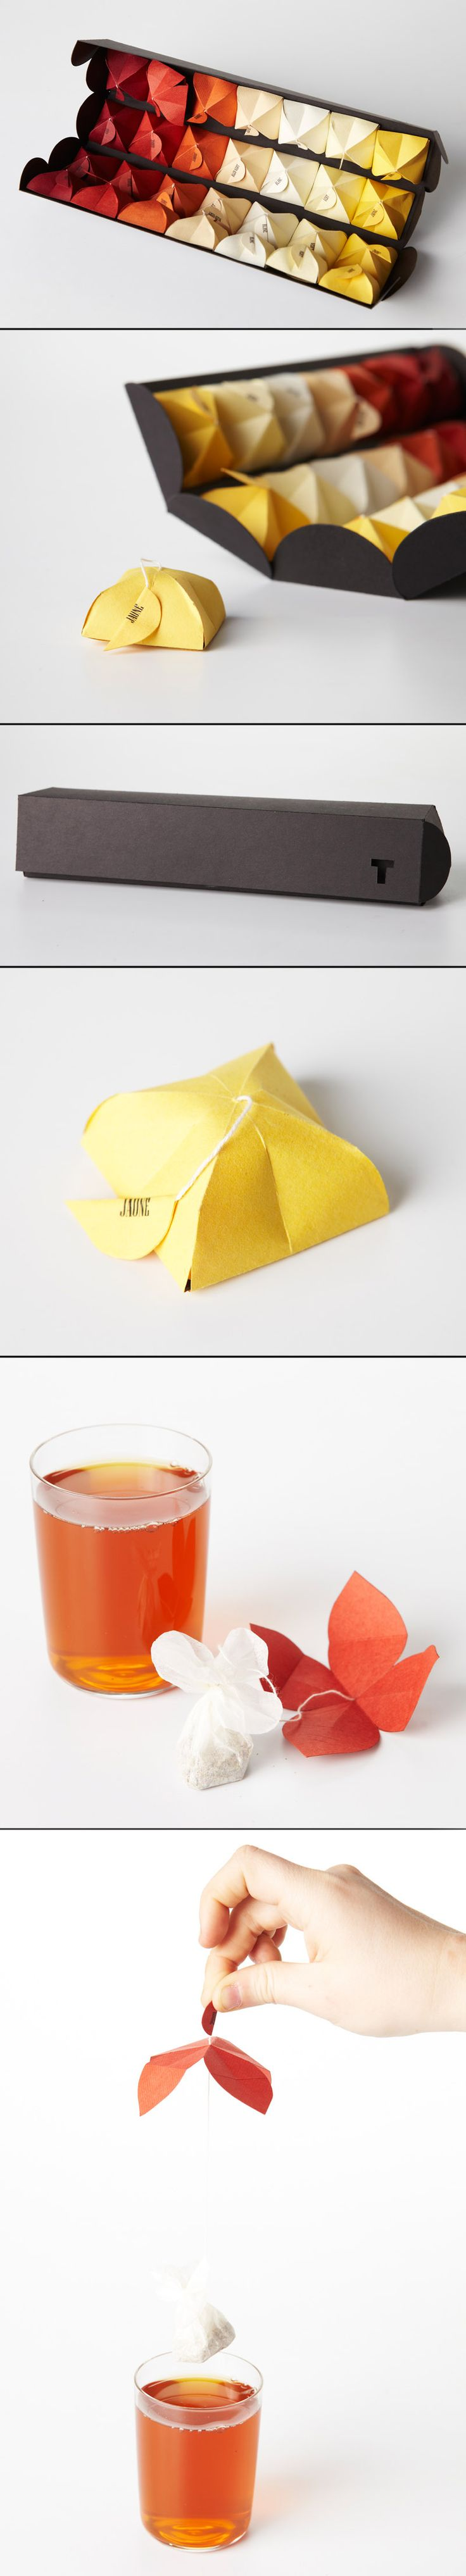 Such an original packaging idea. Makes me love tea even more (if possible)